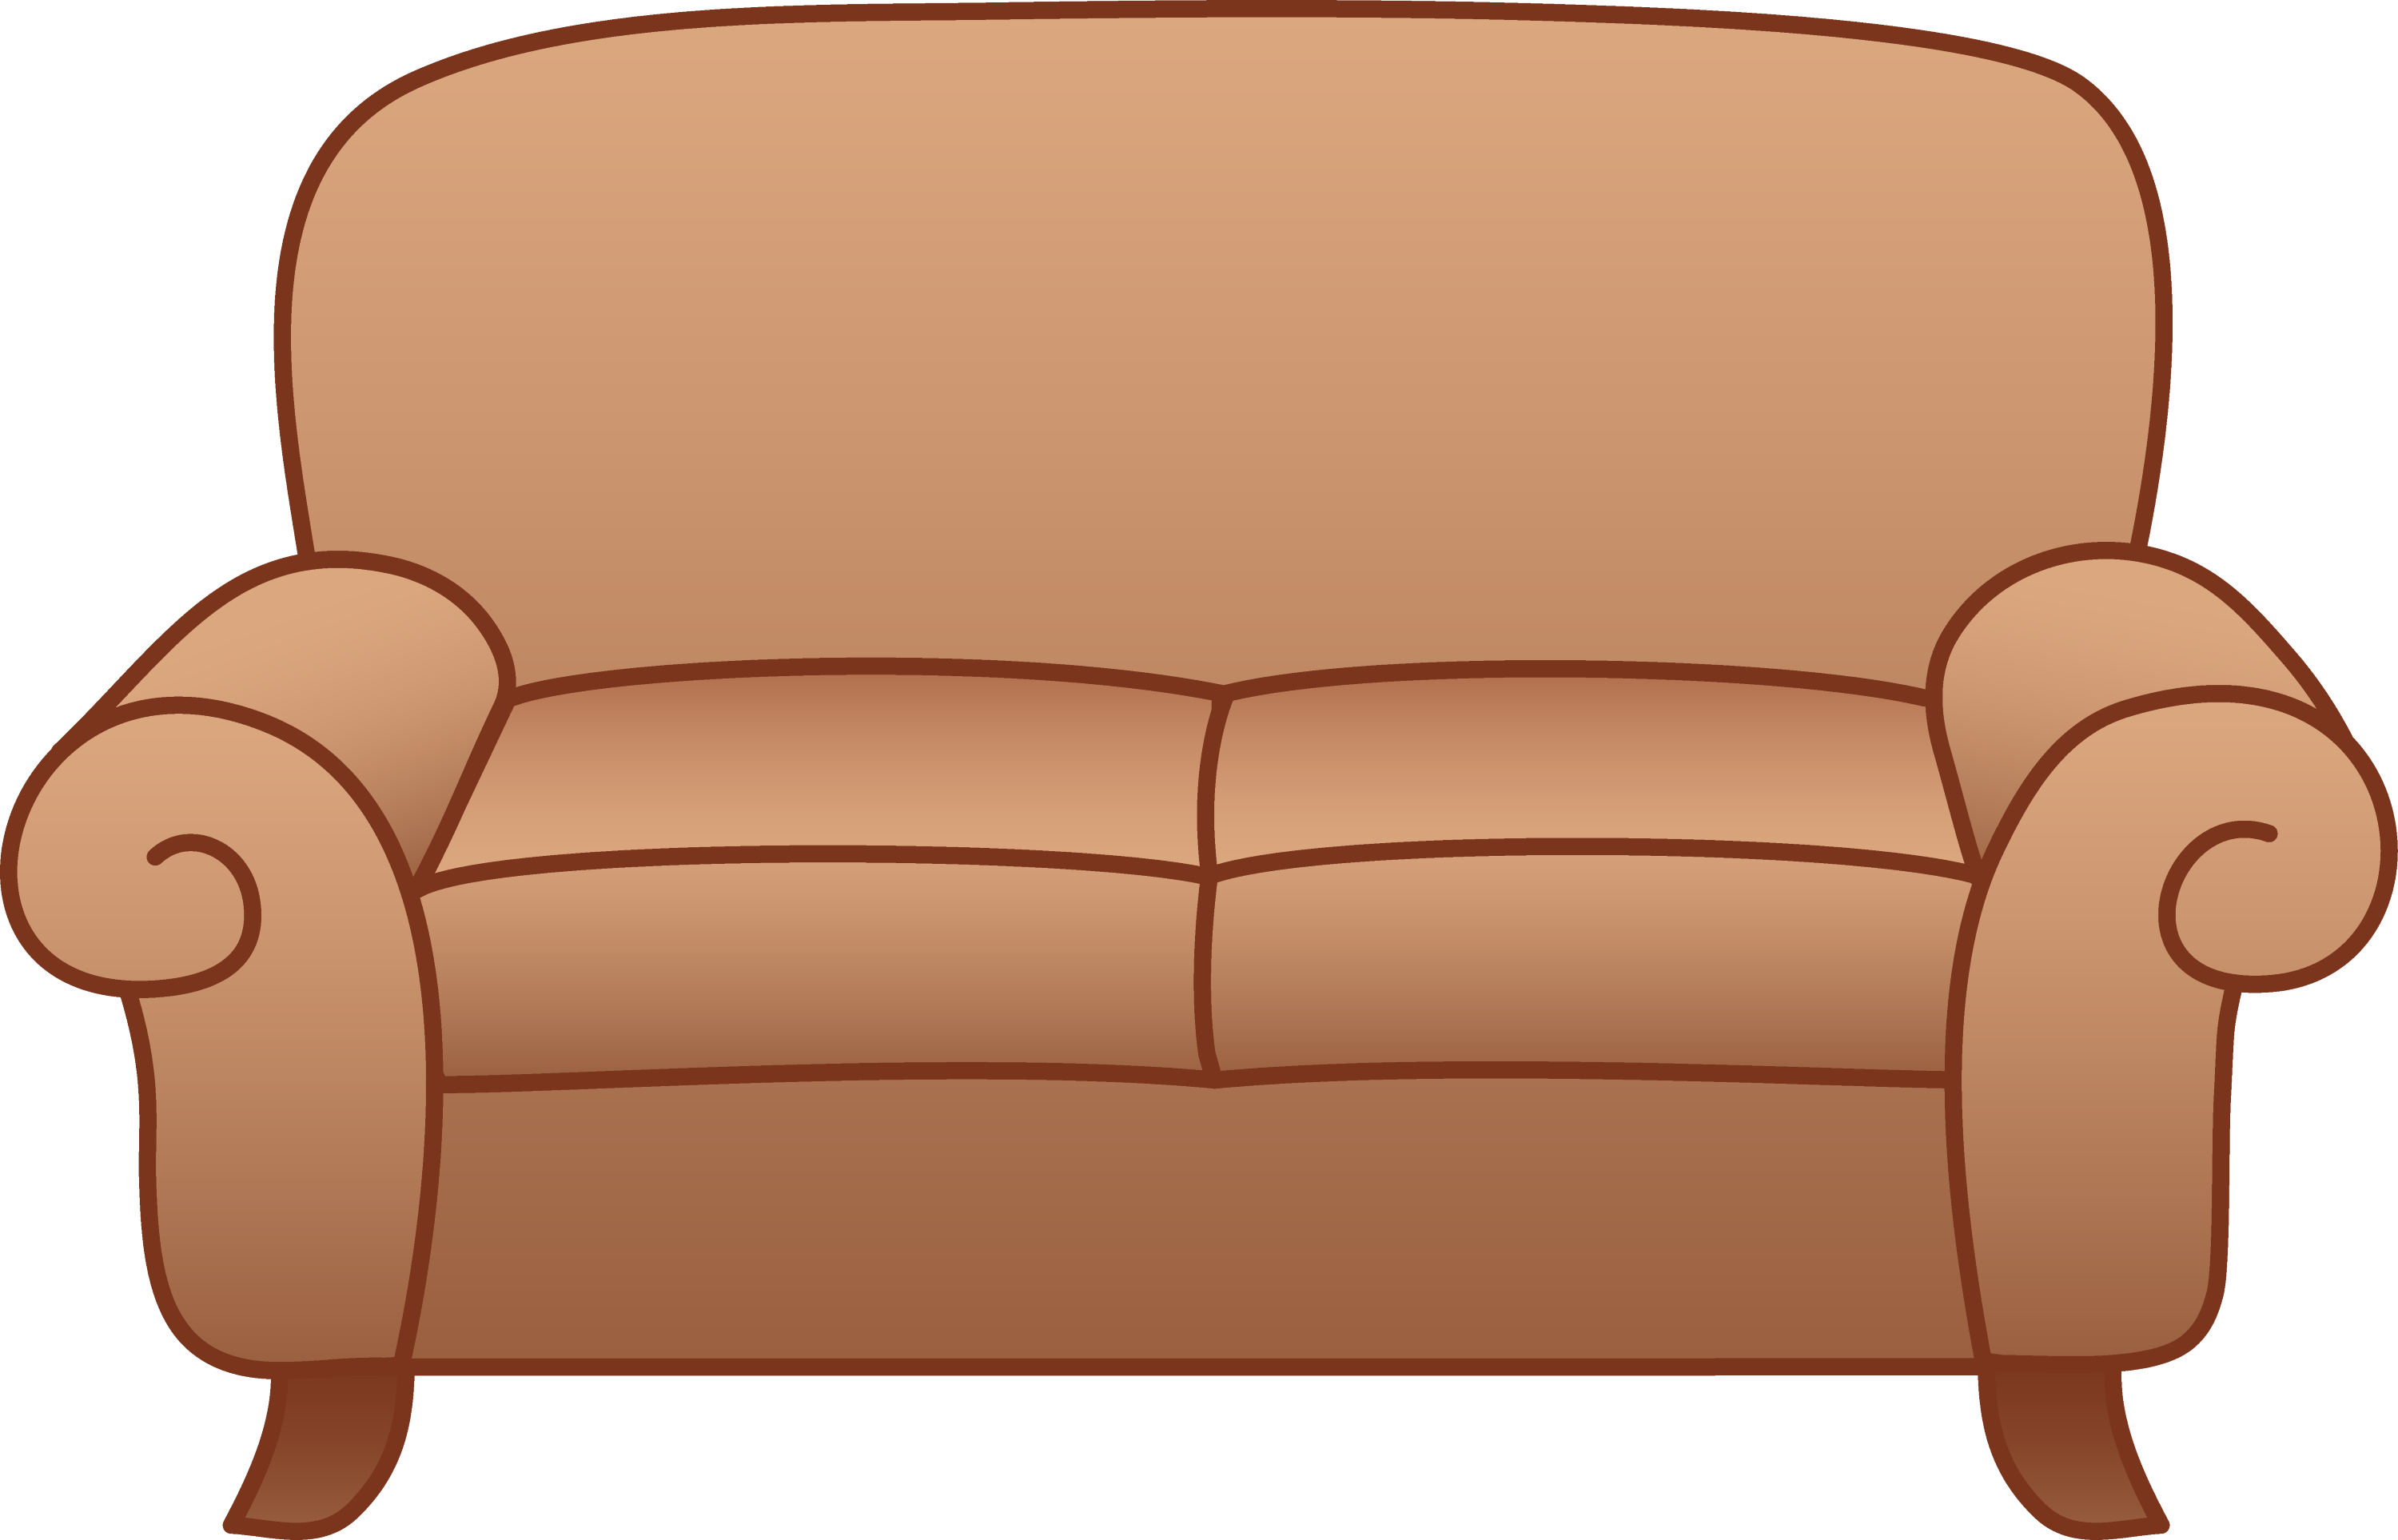 Beige Living Room Sofa Free Clip Art